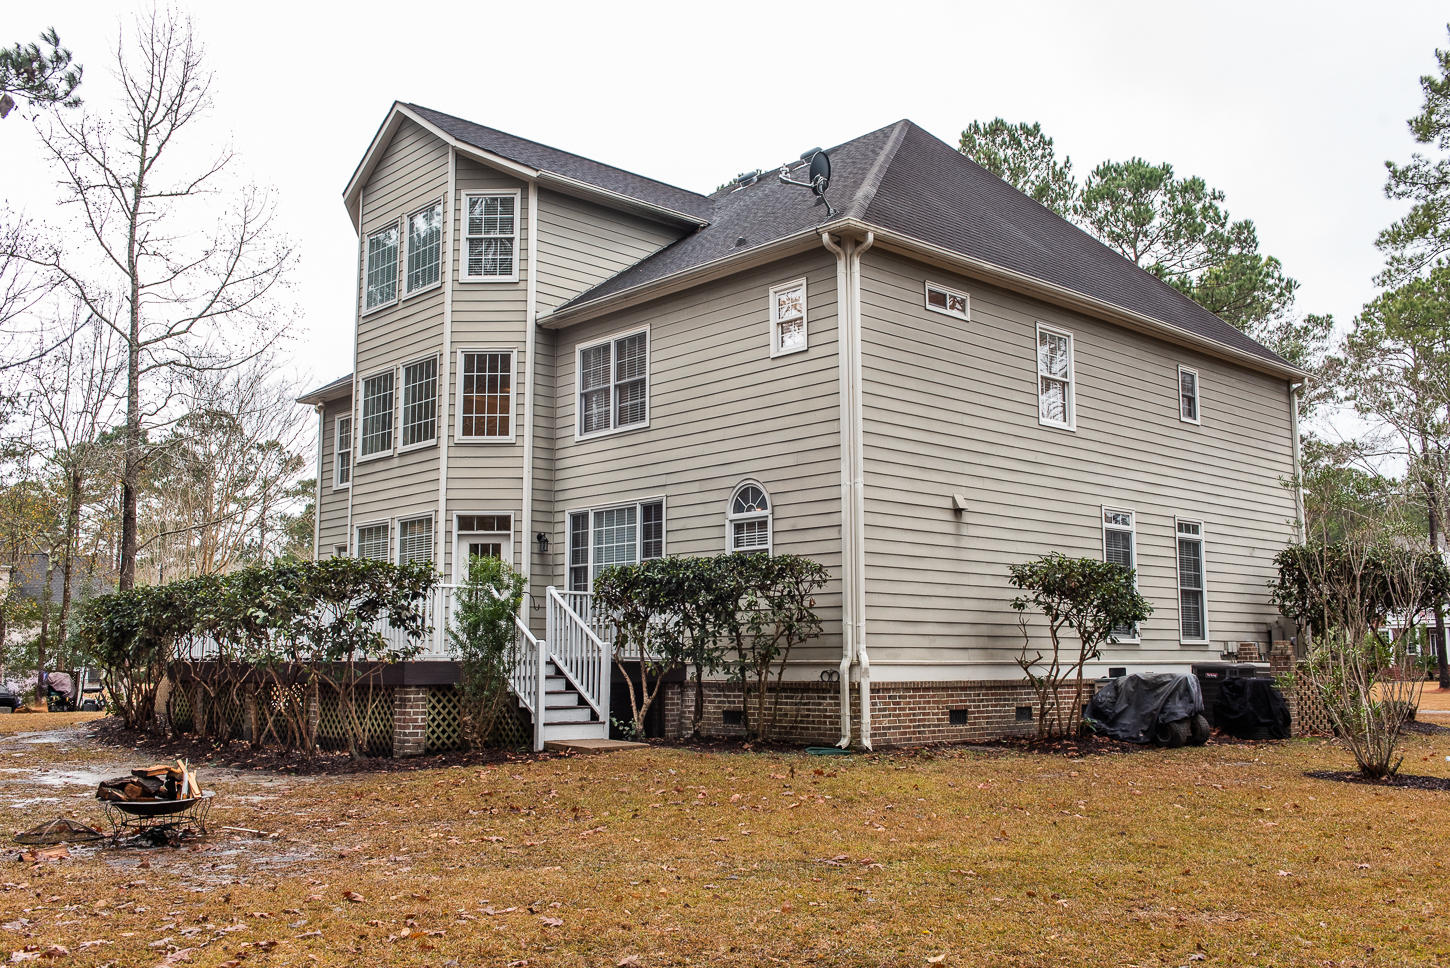 Dunes West Homes For Sale - 1794 Shell Ring, Mount Pleasant, SC - 19